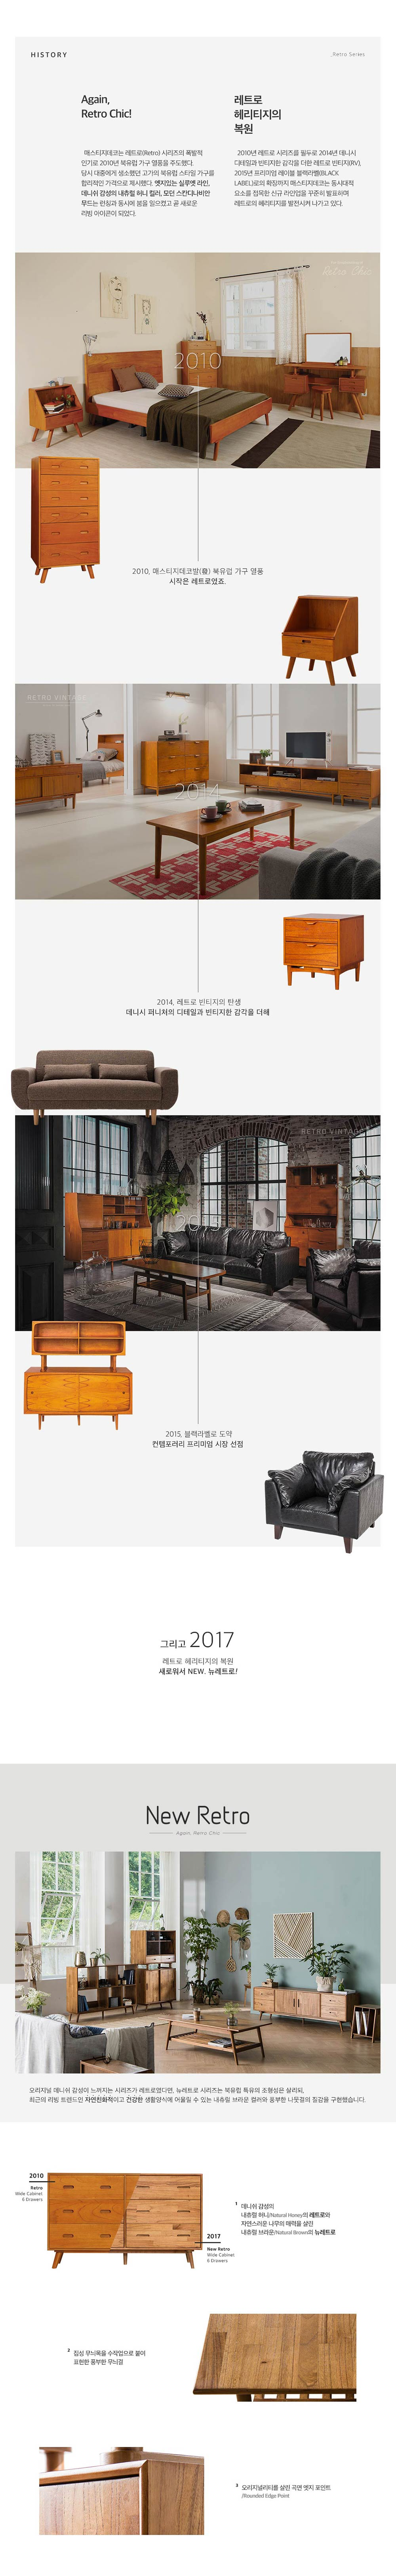 New_Retro_Standing_Mirror_History_1_Singapore_Online_Furniture_by_born_in_colour